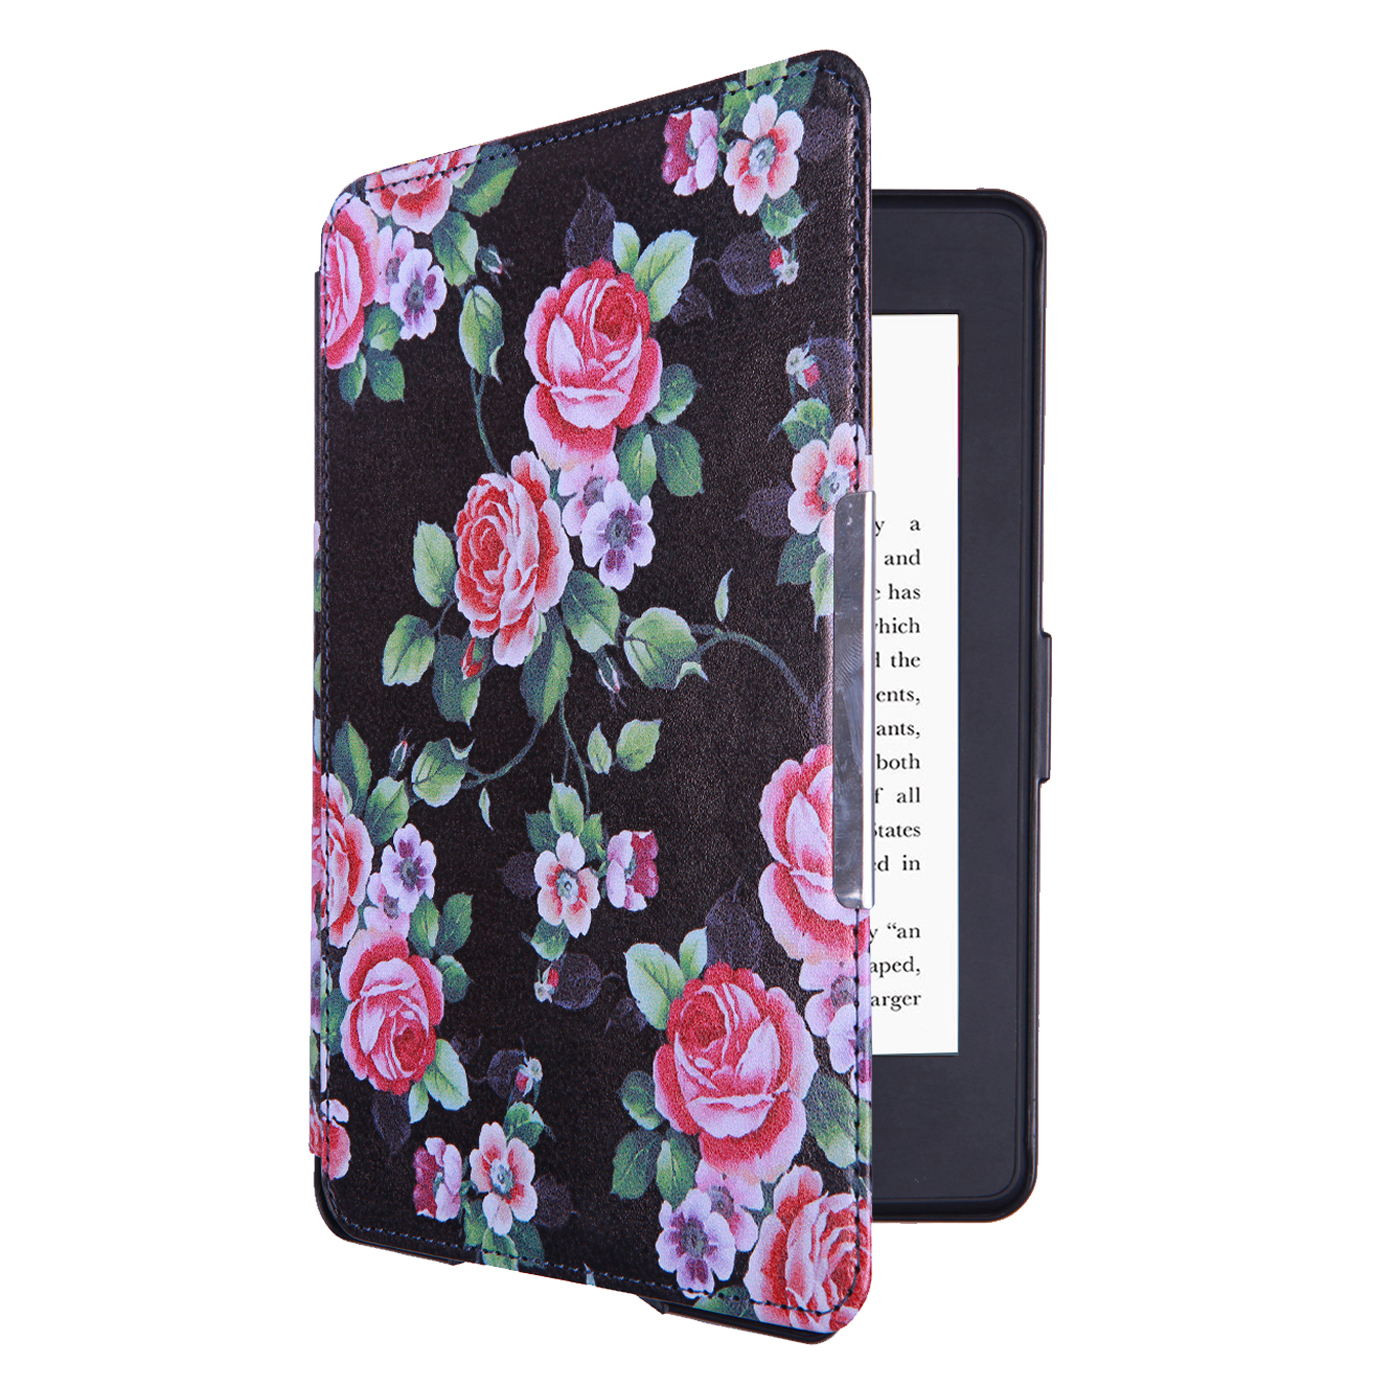 HDE Ultra Slim Case for Kindle Paperwhite Auto Sleep Wake Magnetic Cover Smart Shell for 1st 2nd 3rd Generation Paperwhite (Black Floral)